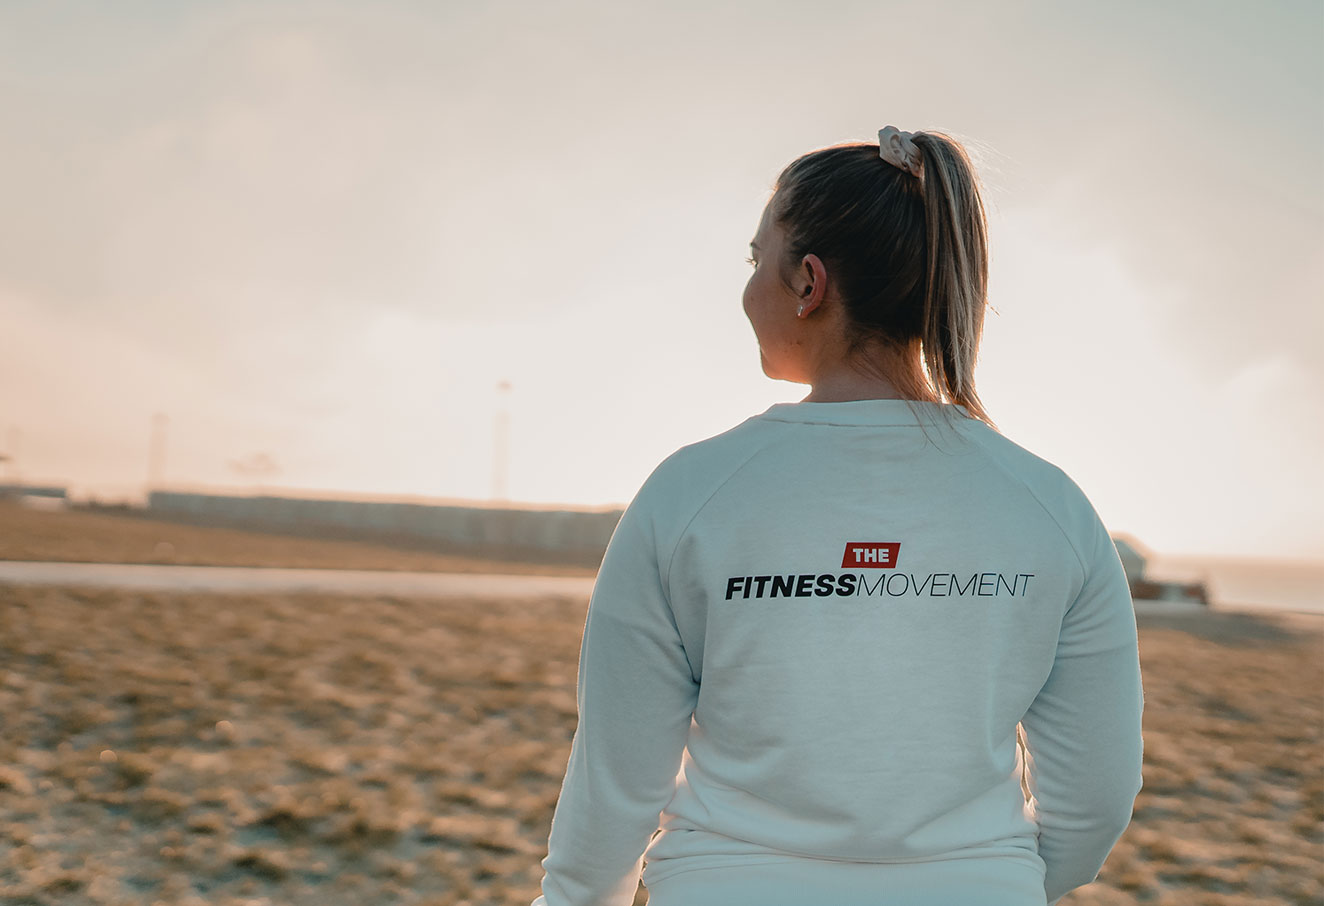 The Fitness Movement - Course, Become a personal trainer